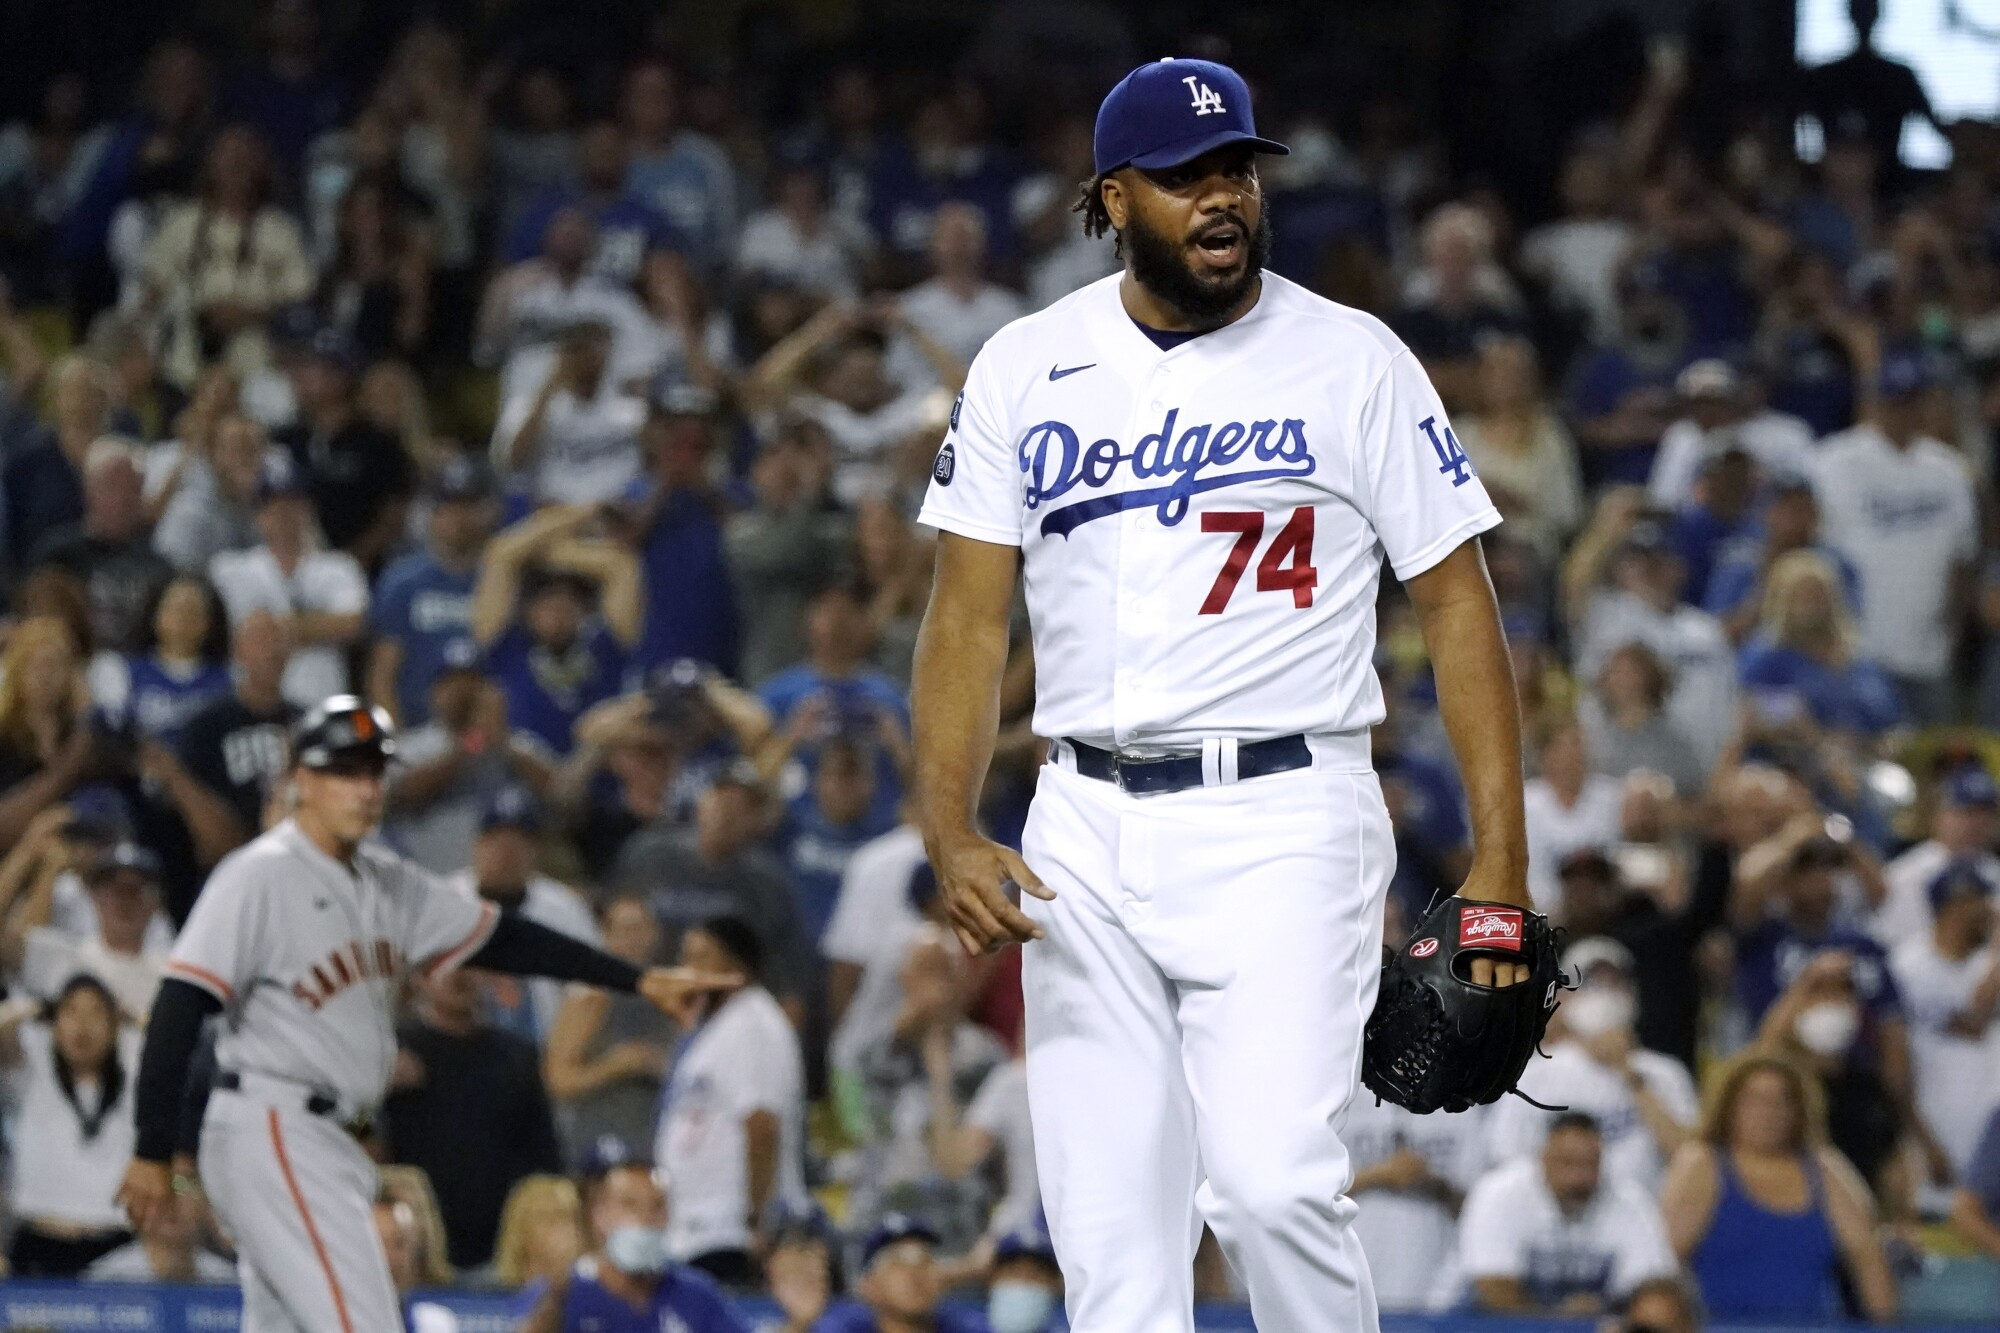 Kenley Jansen reacts after walking Darin Ruf with the bases loaded in the ninth inning.